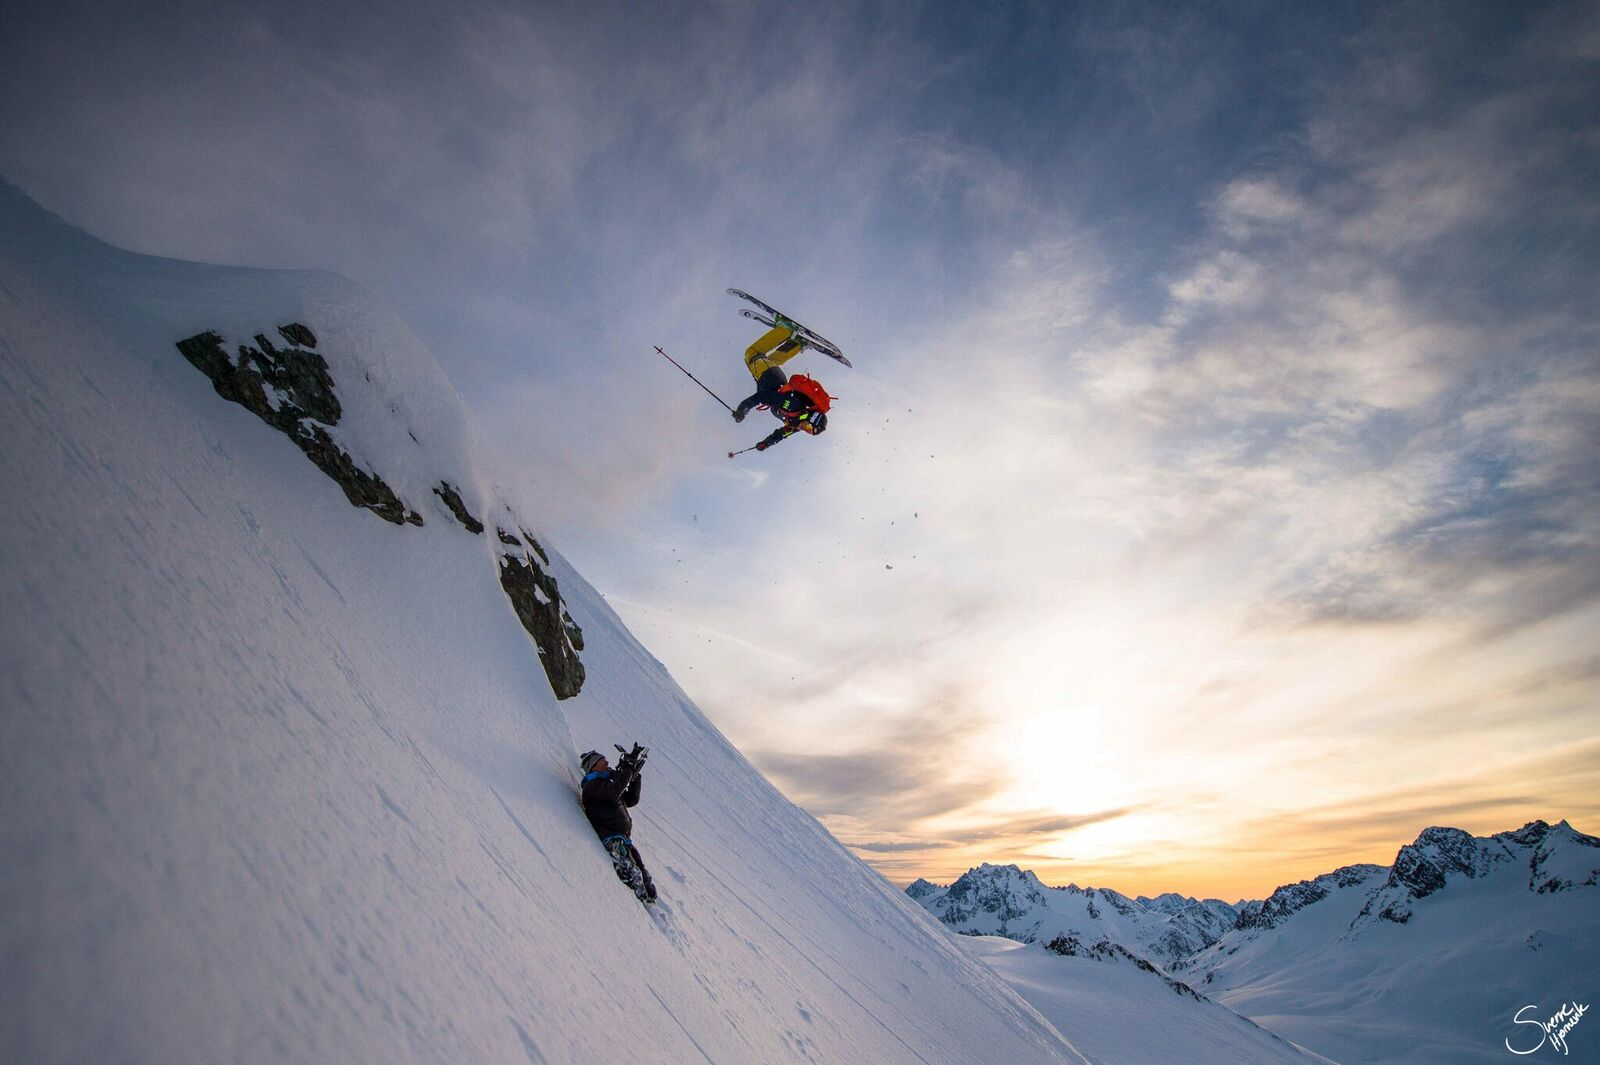 Push your limits on some of the wildest terrain Alaska has to offer.